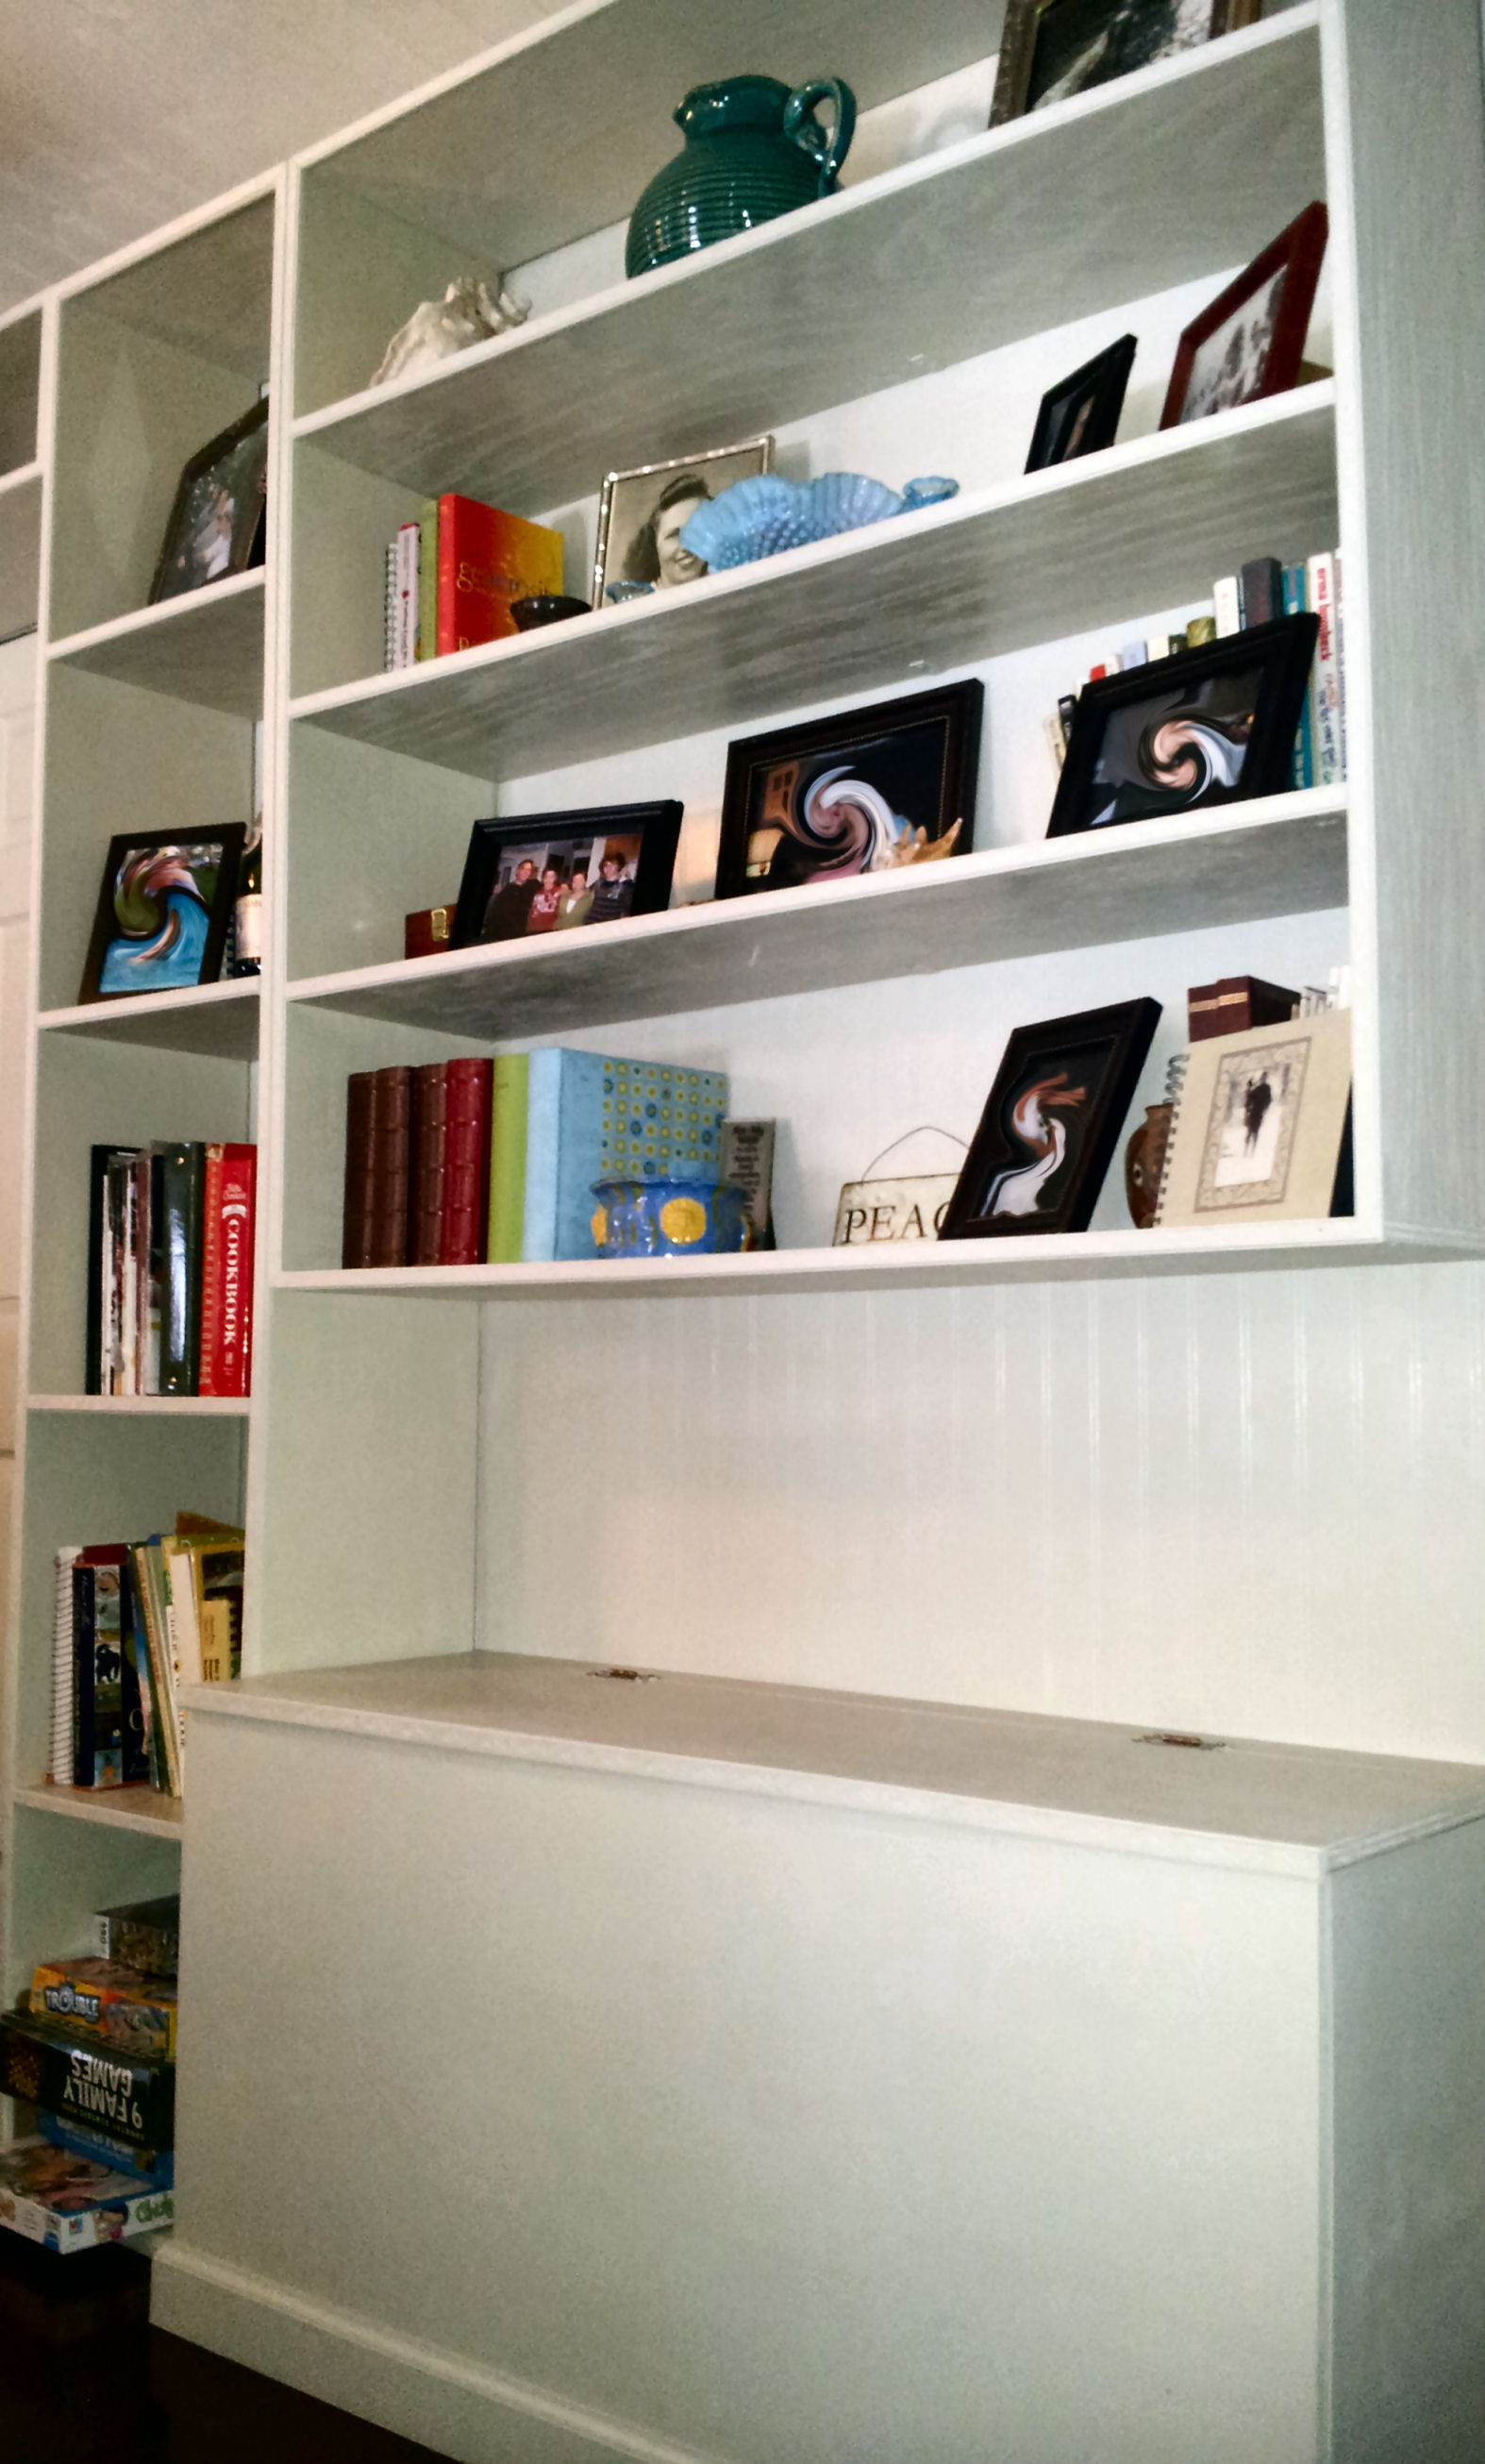 Book shelves and benches